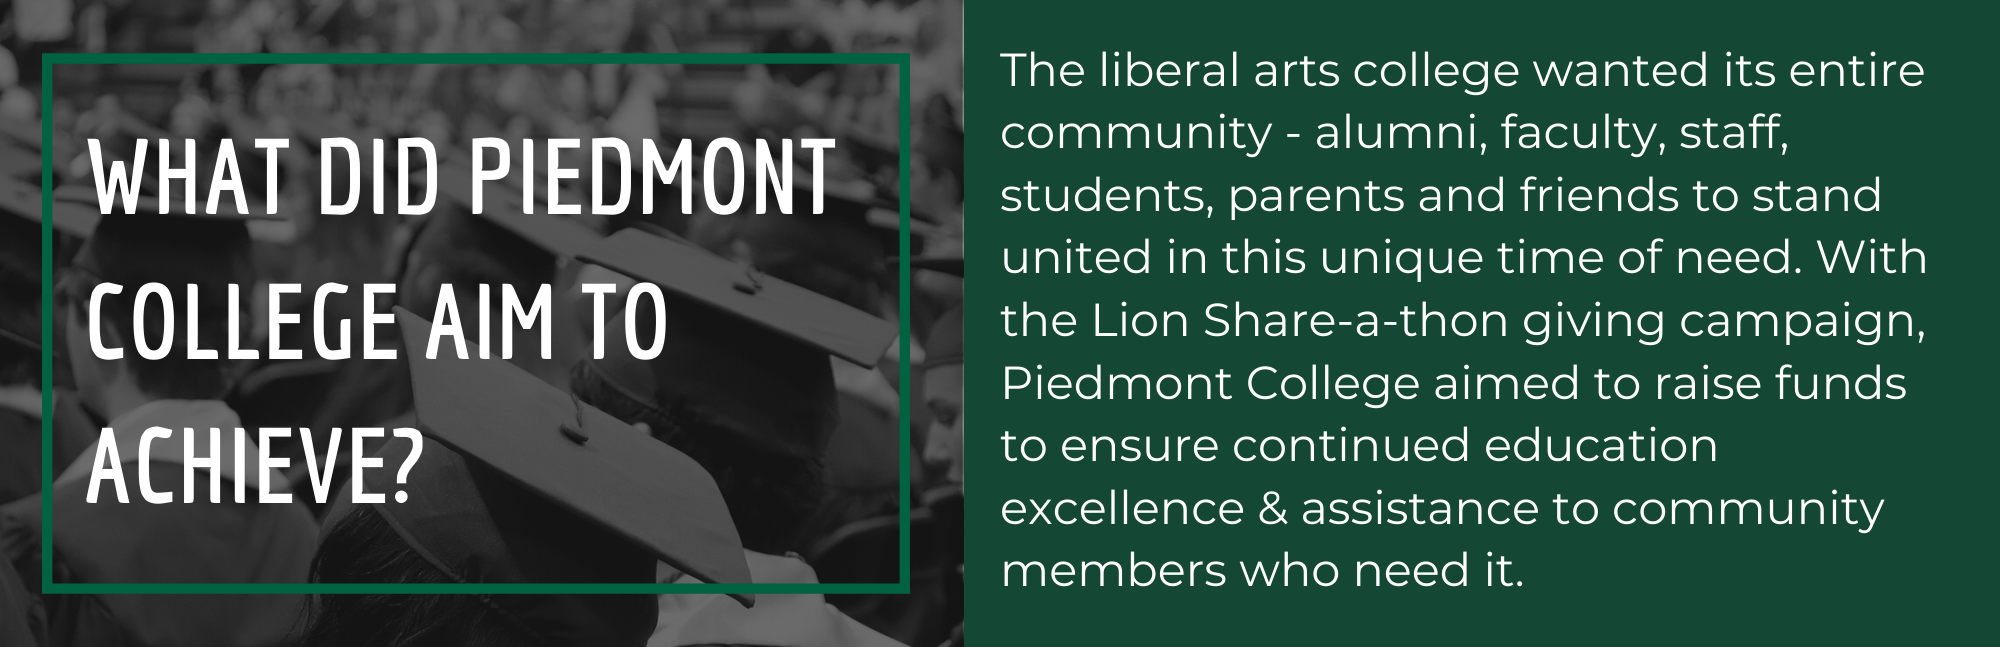 What did Piedmont College aim to achieve?